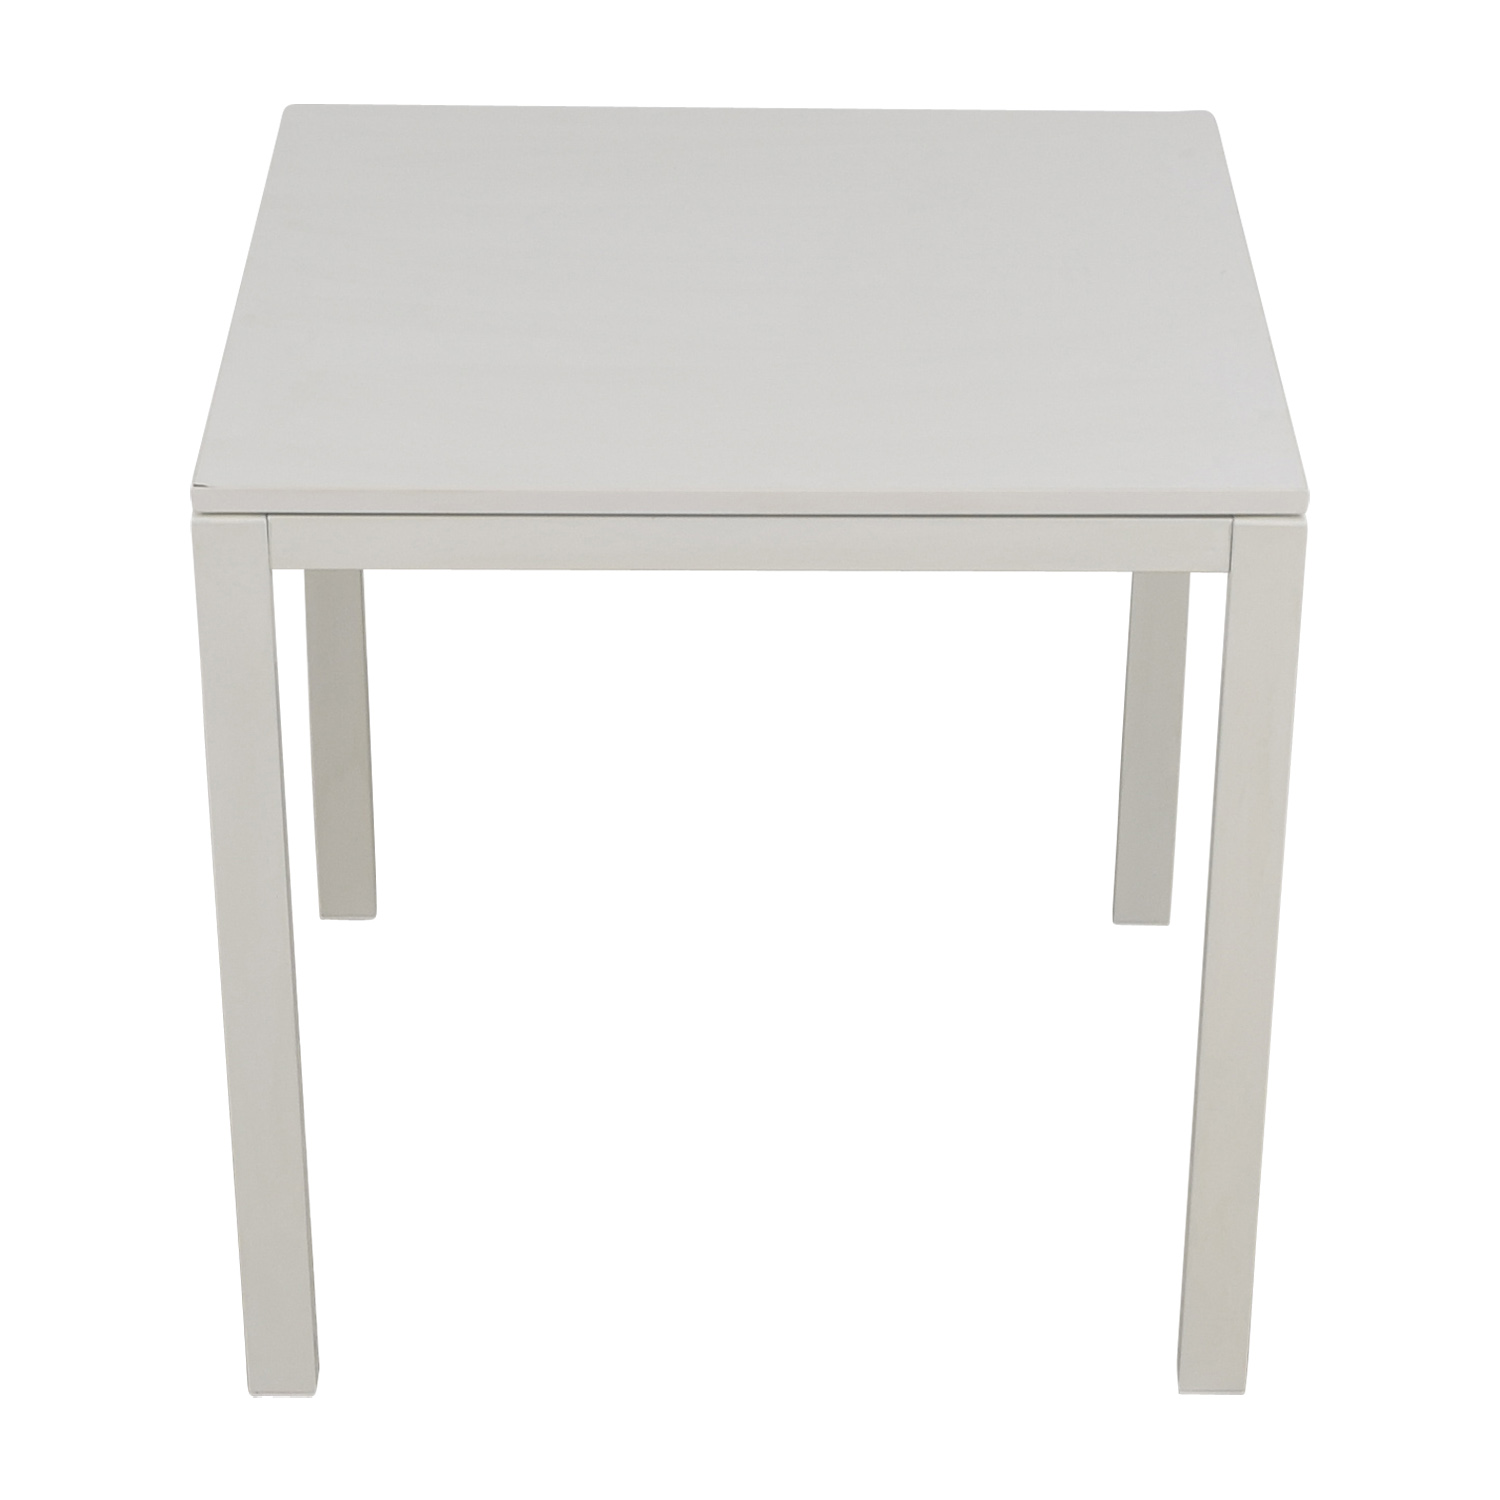 off simple white accent table tables used person square dining wooden trestle teak outdoor box ikea gingham tablecloths small decorative for winter patio furniture covers closeout